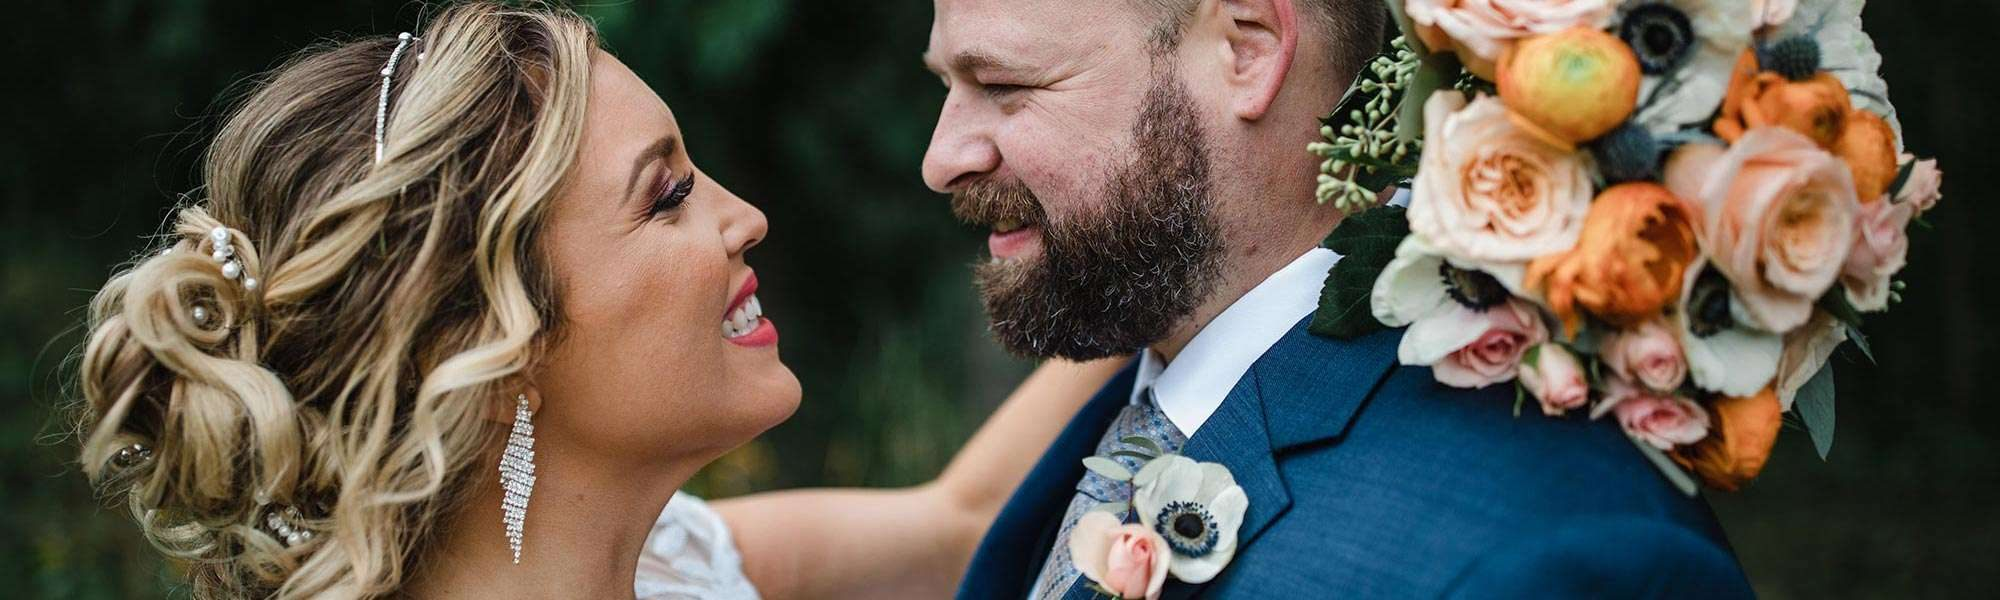 Katie and Jesse marry at Terrace 167 in Richfield WI